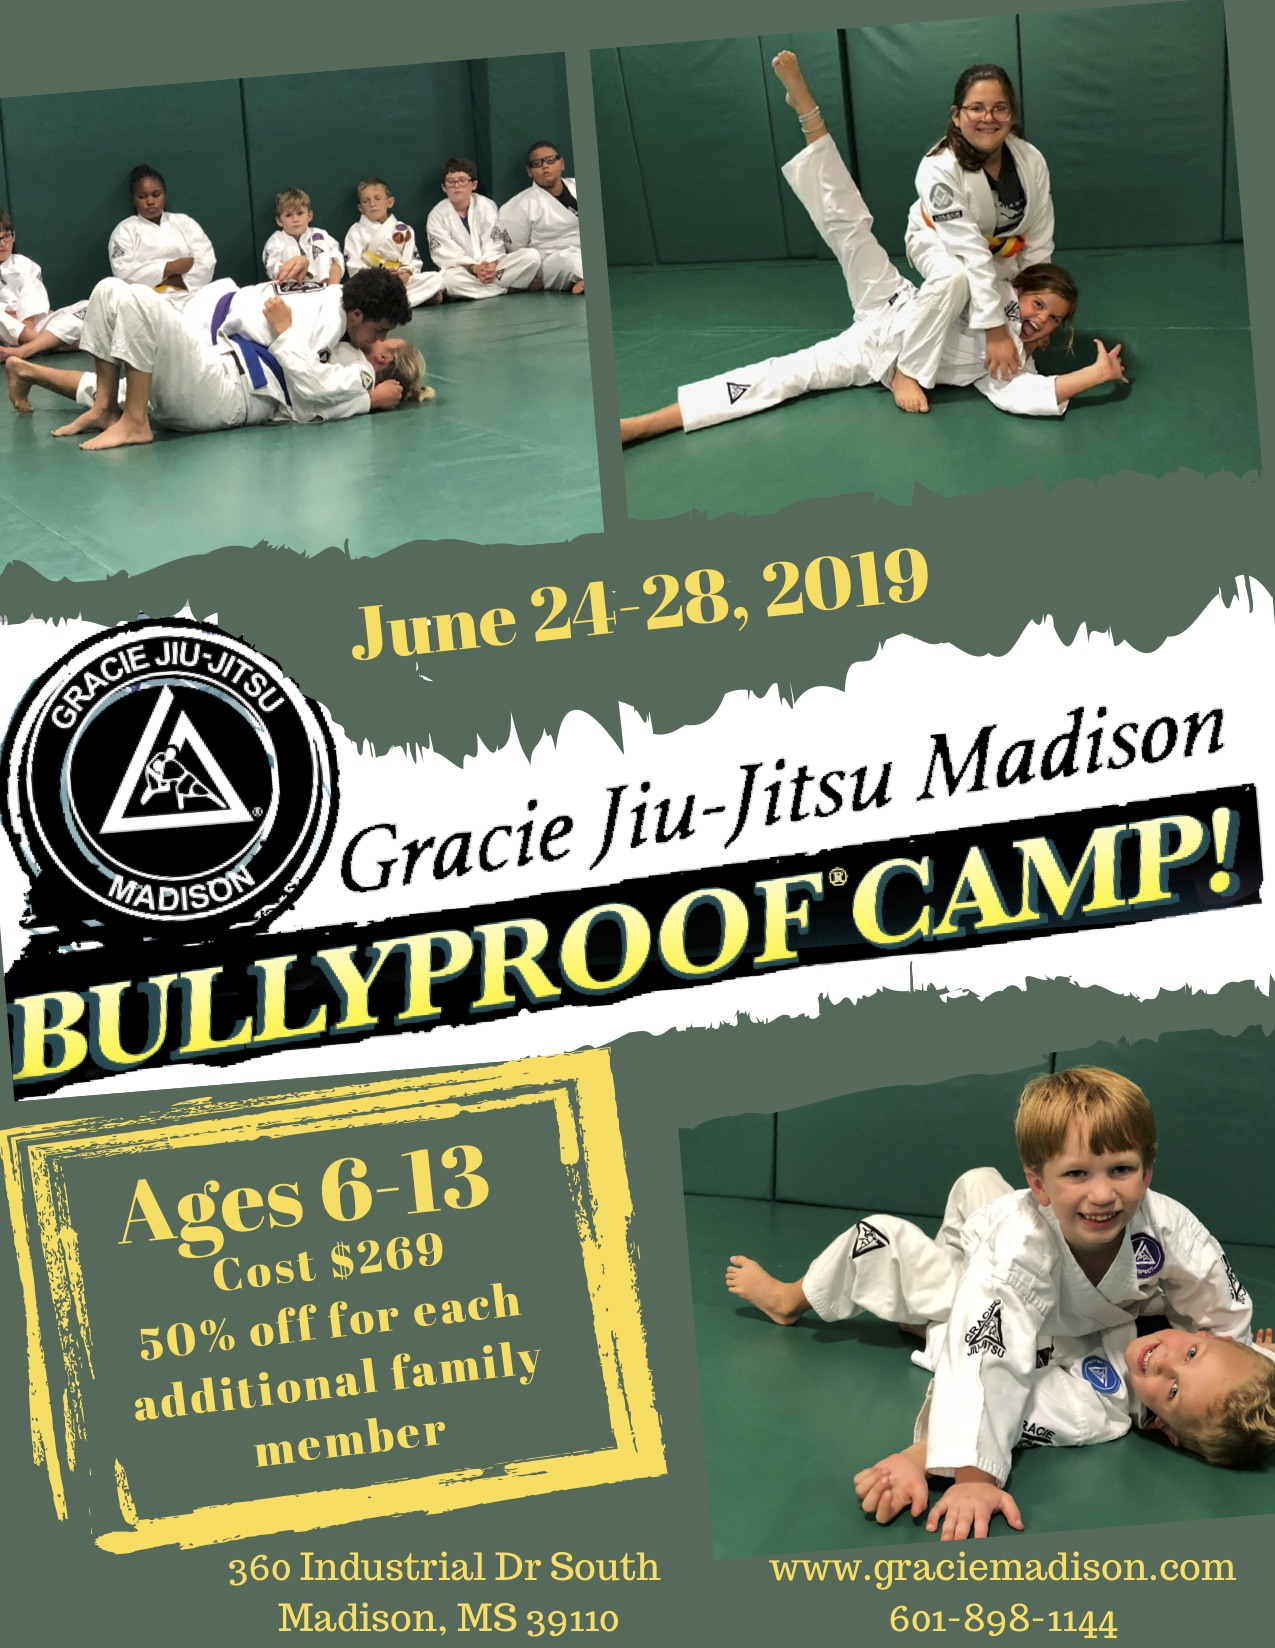 Gracie BULLYPROOF Summer Camp 2019 - June 24 -28, 2019